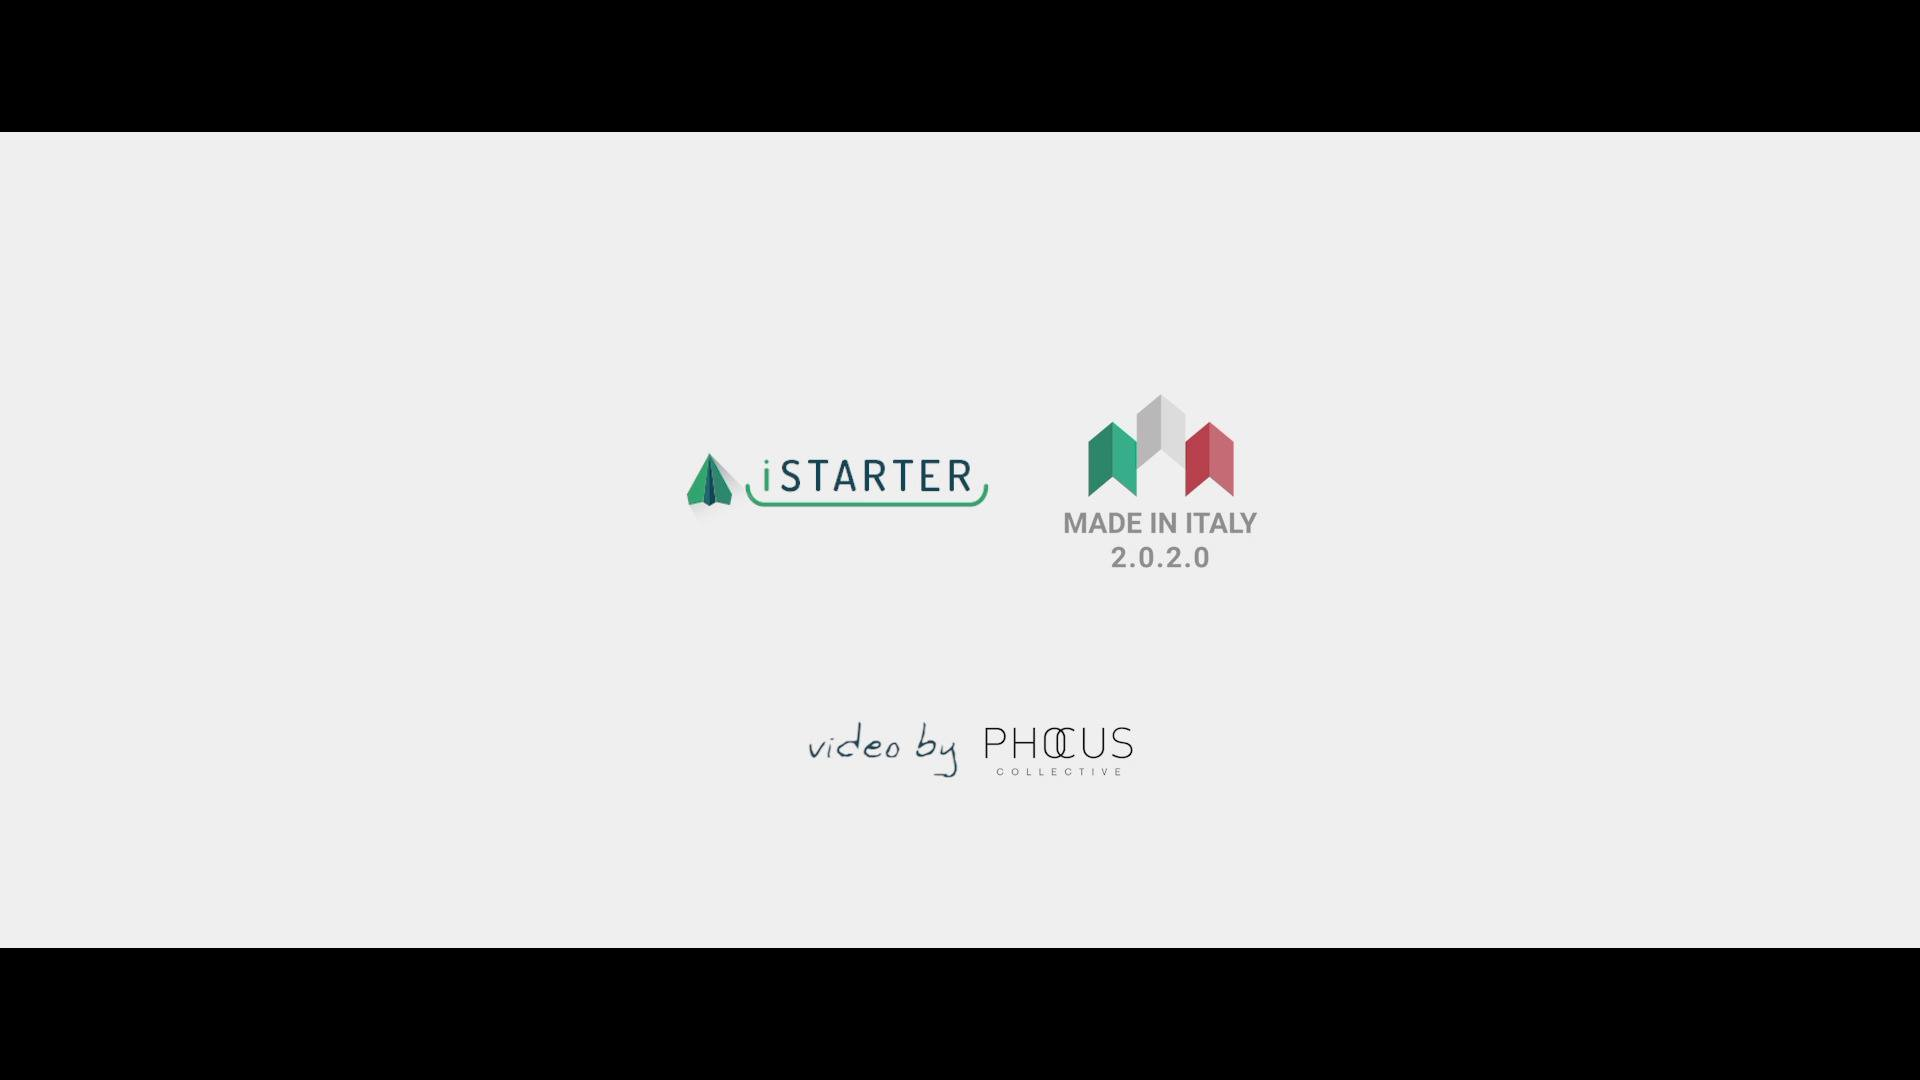 iStarter: Made in Italy 2.0.2.0 - Aftermovie